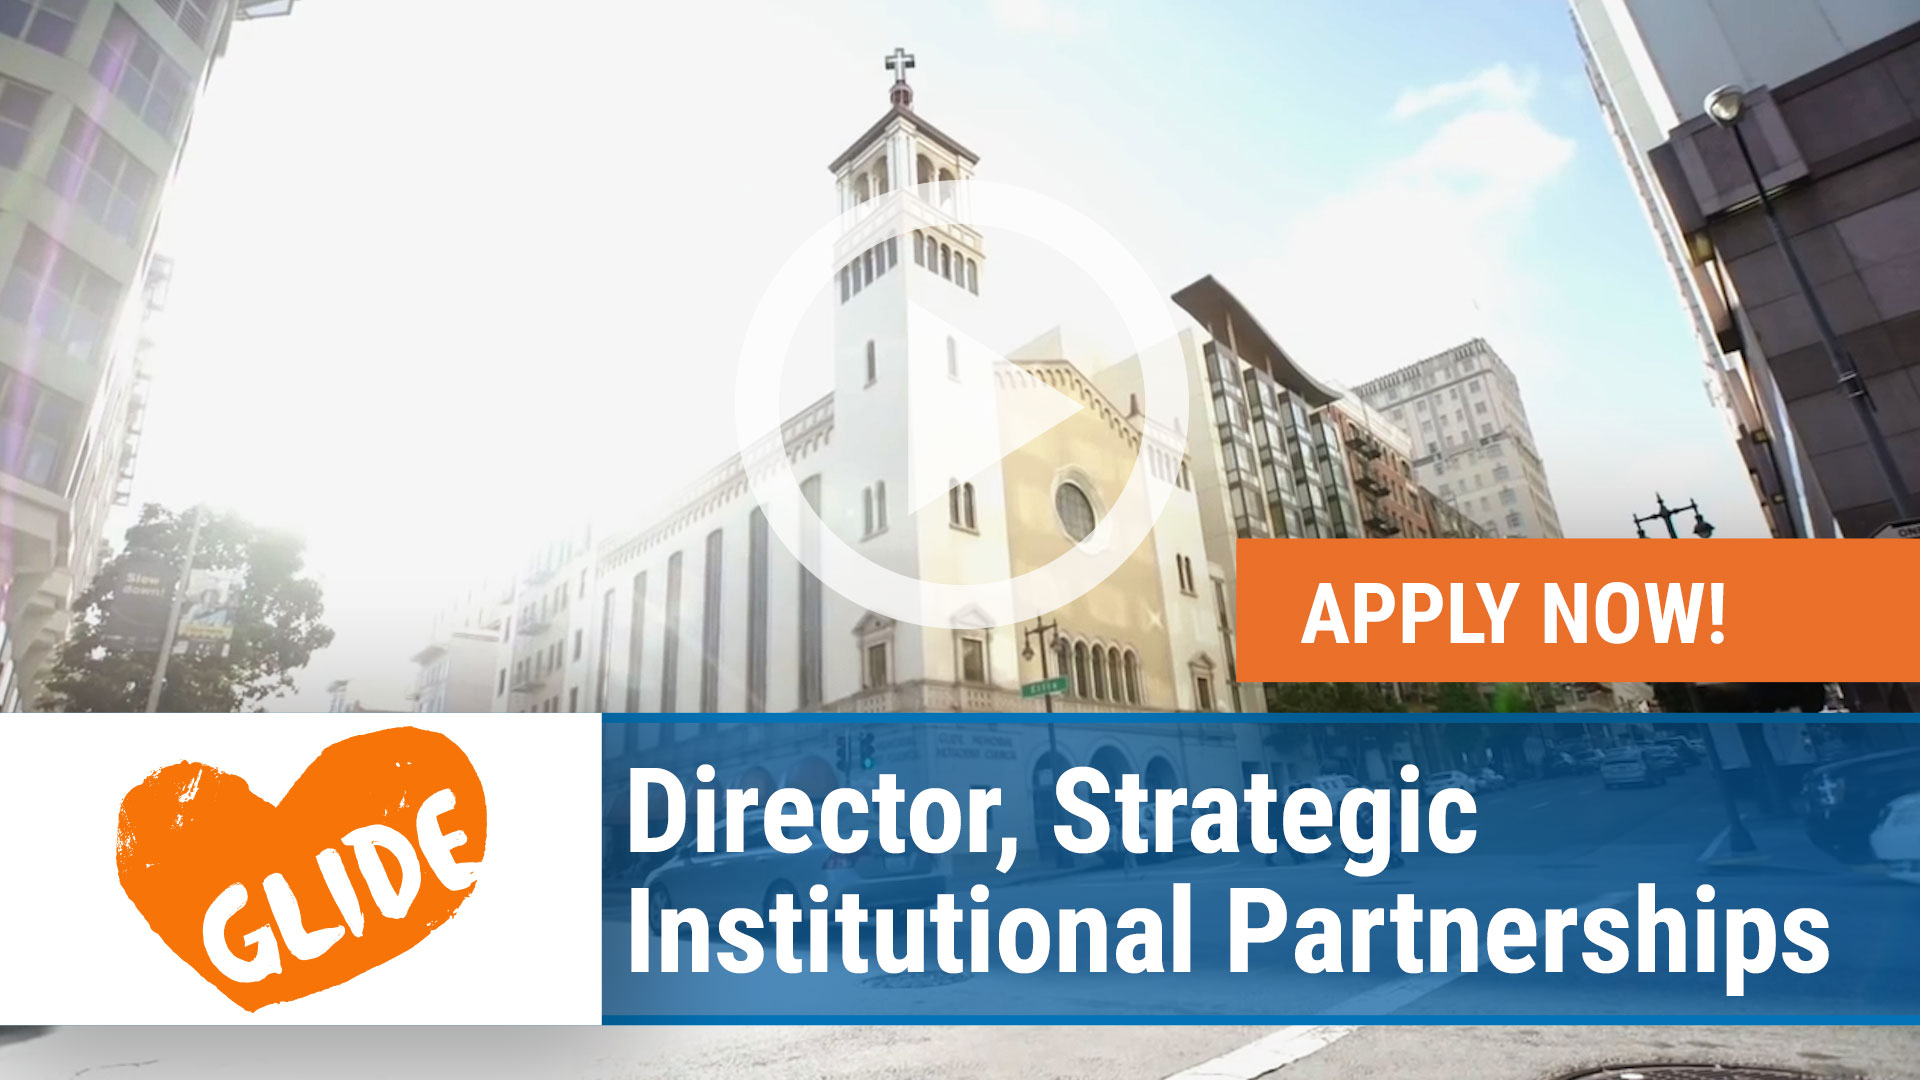 Watch our careers video for available job opening Director, Strategic Institutional Partnerships for GLIDE in San Francisco, California